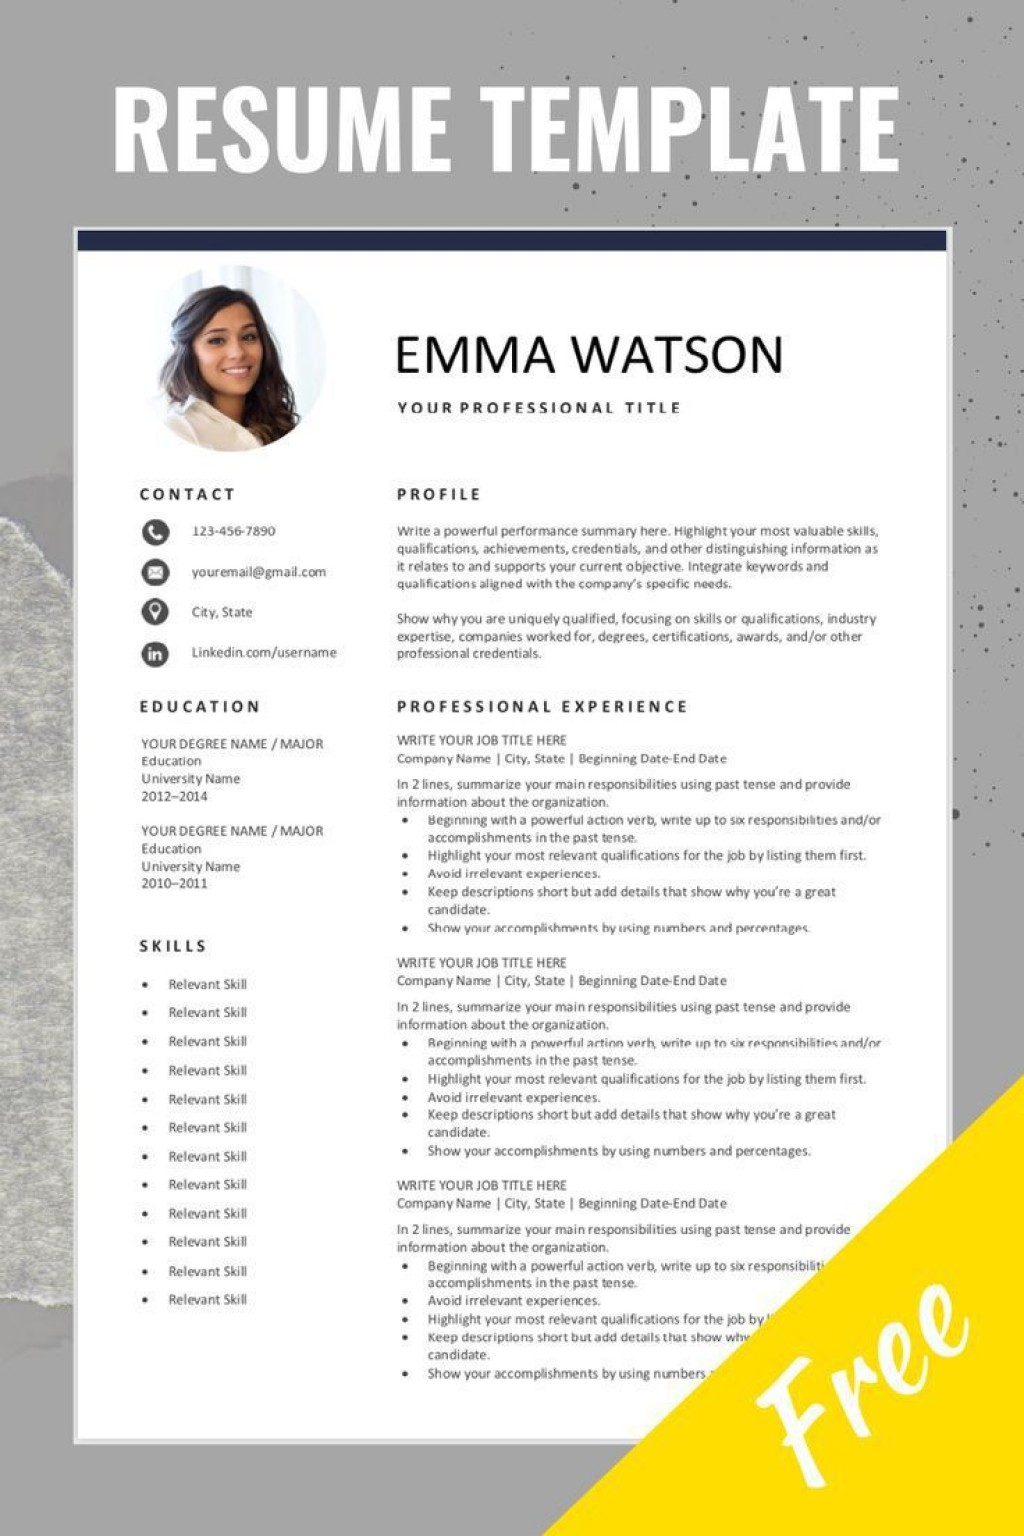 000 Unique Resume Template Word Download Sample  For Fresher In Format Free 2020Large